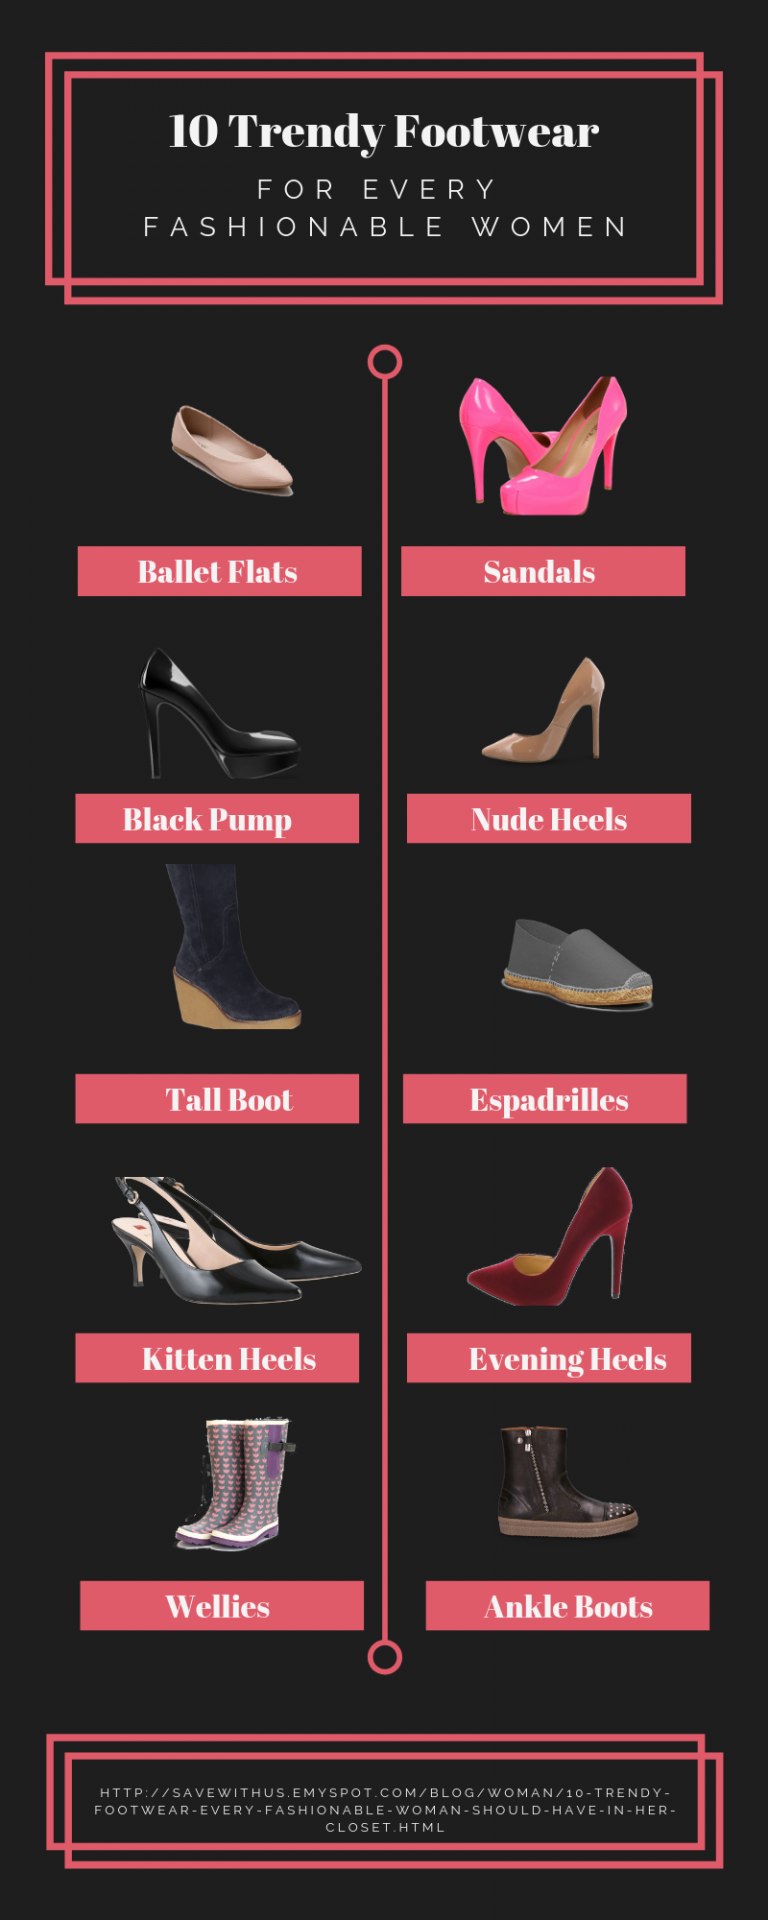 10 Trendy Footwear Every Fashionable Woman Should Have in Her Closet